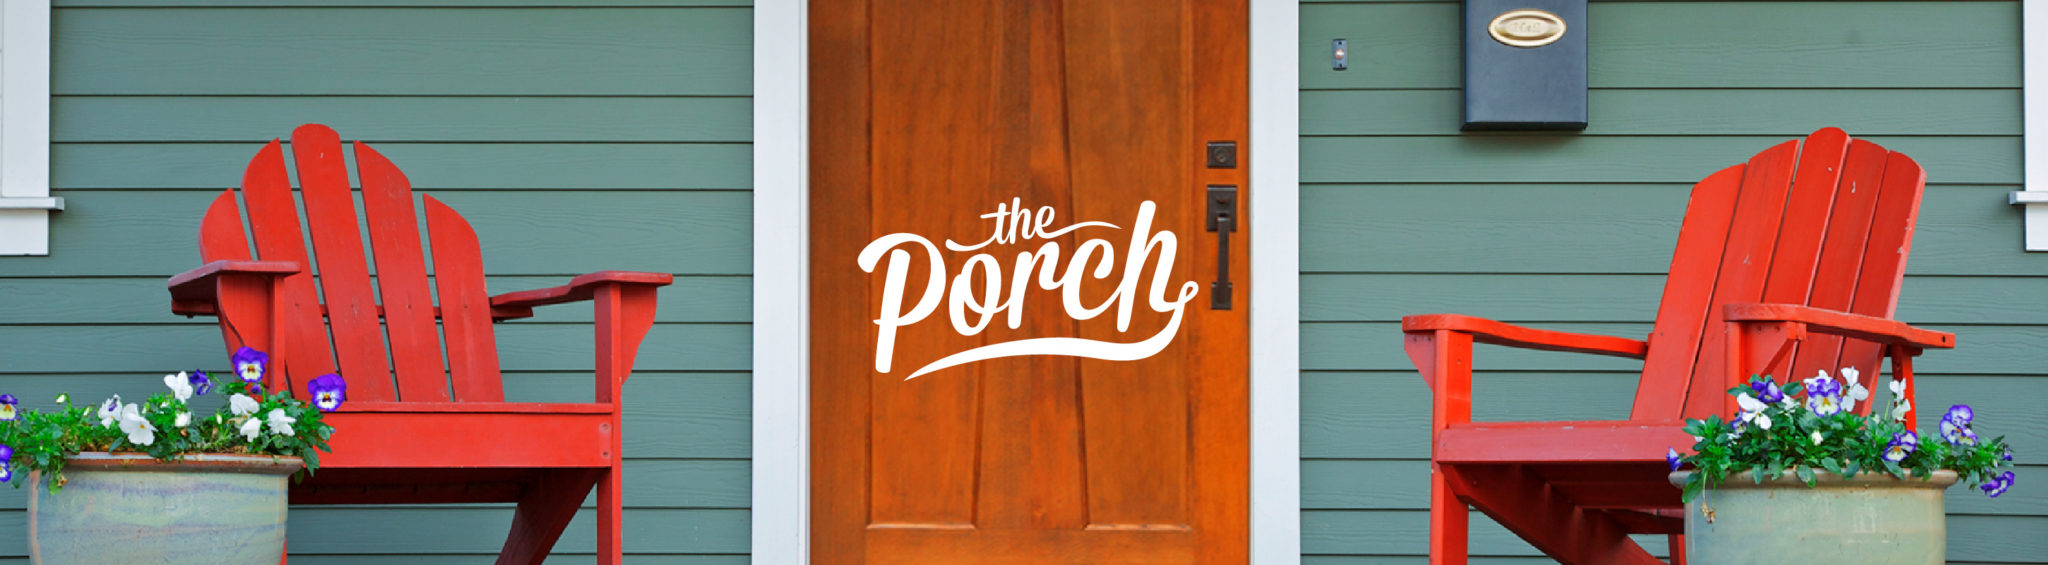 19-150-004-BBR-2019-The-Porch-Graphics_porch-header